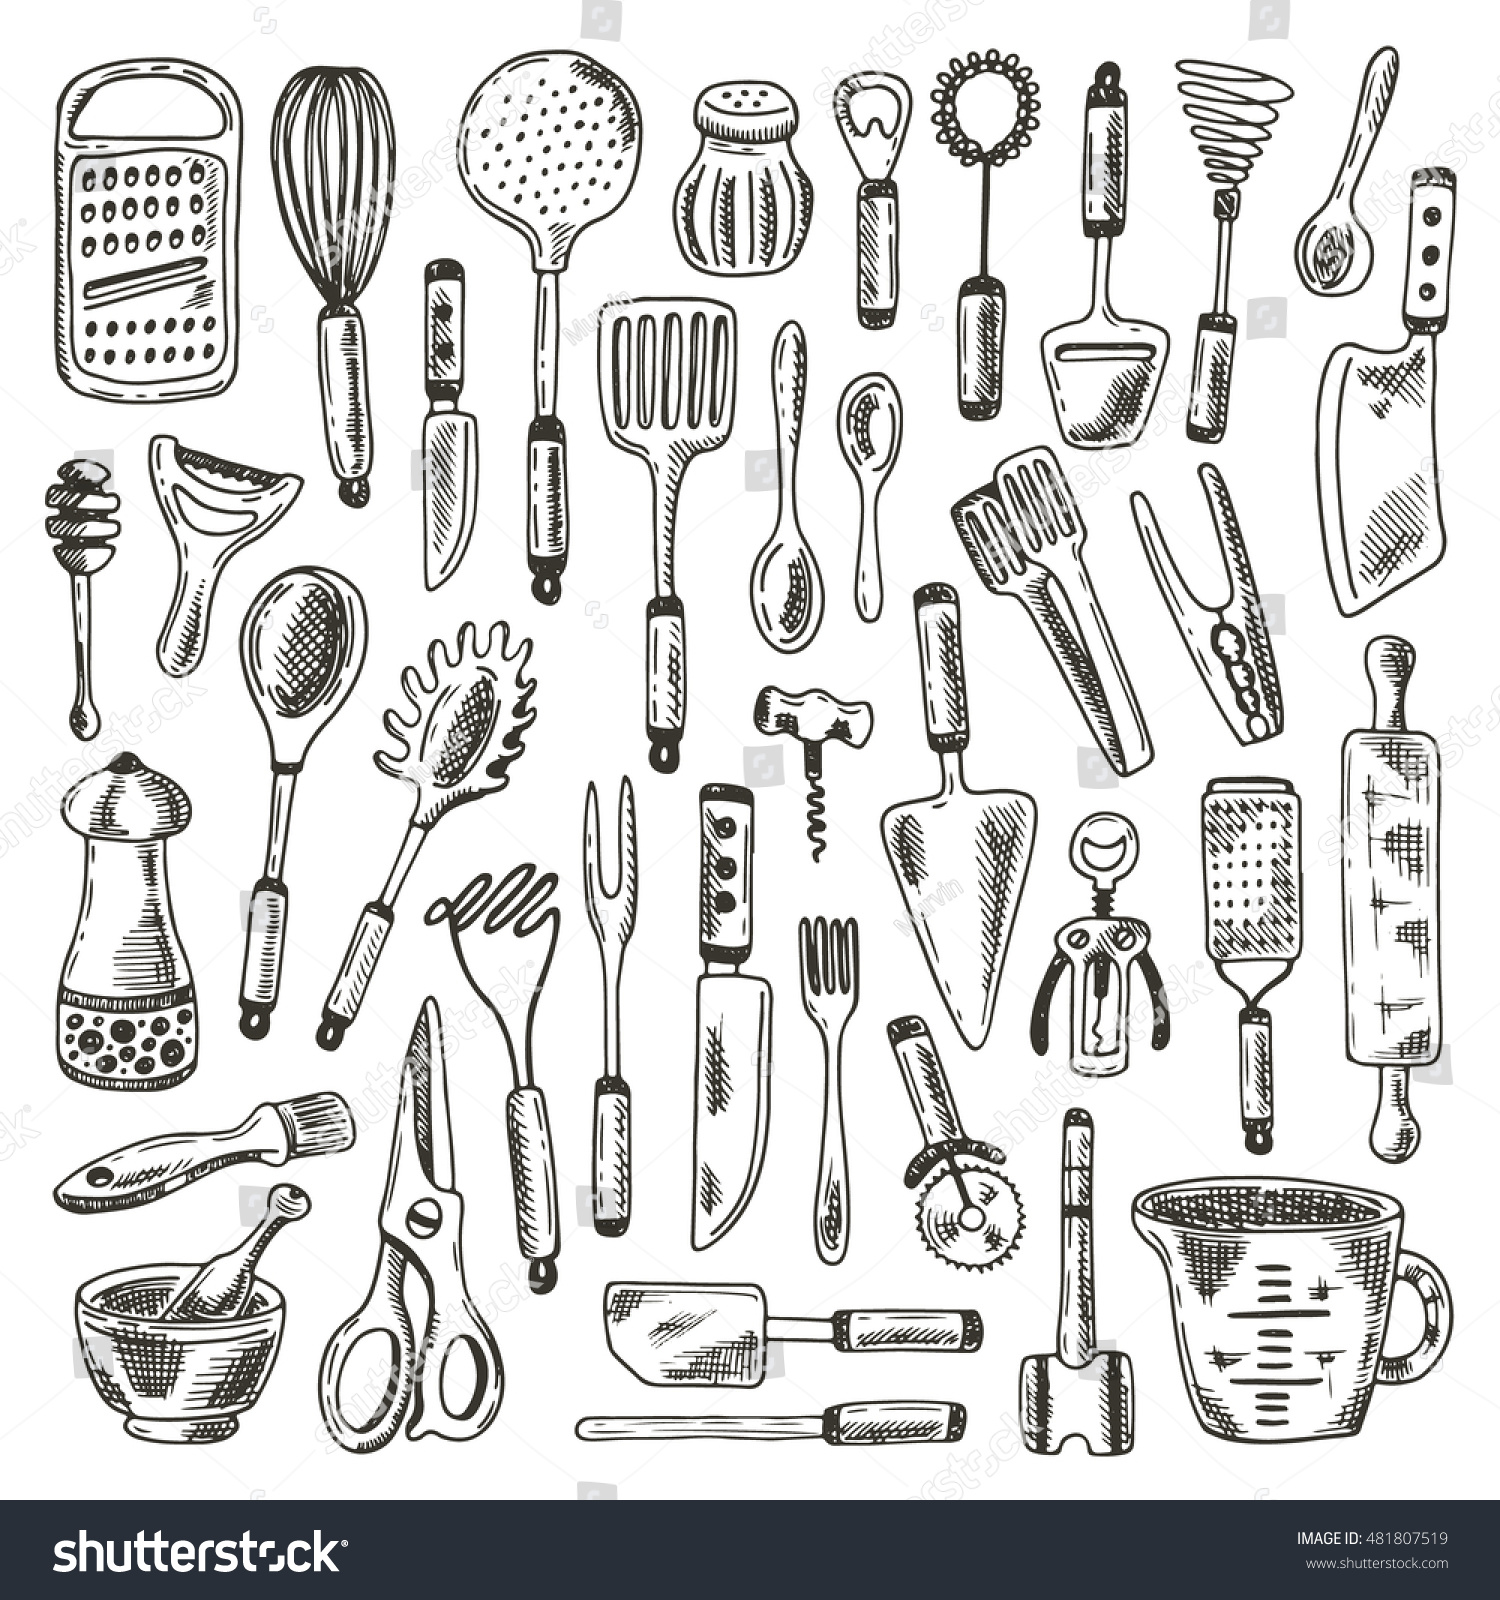 Kitchen Supplies Set. Hand Drawn Vector Illustration. Peeler, Grater,  Spoon, Corkscrew